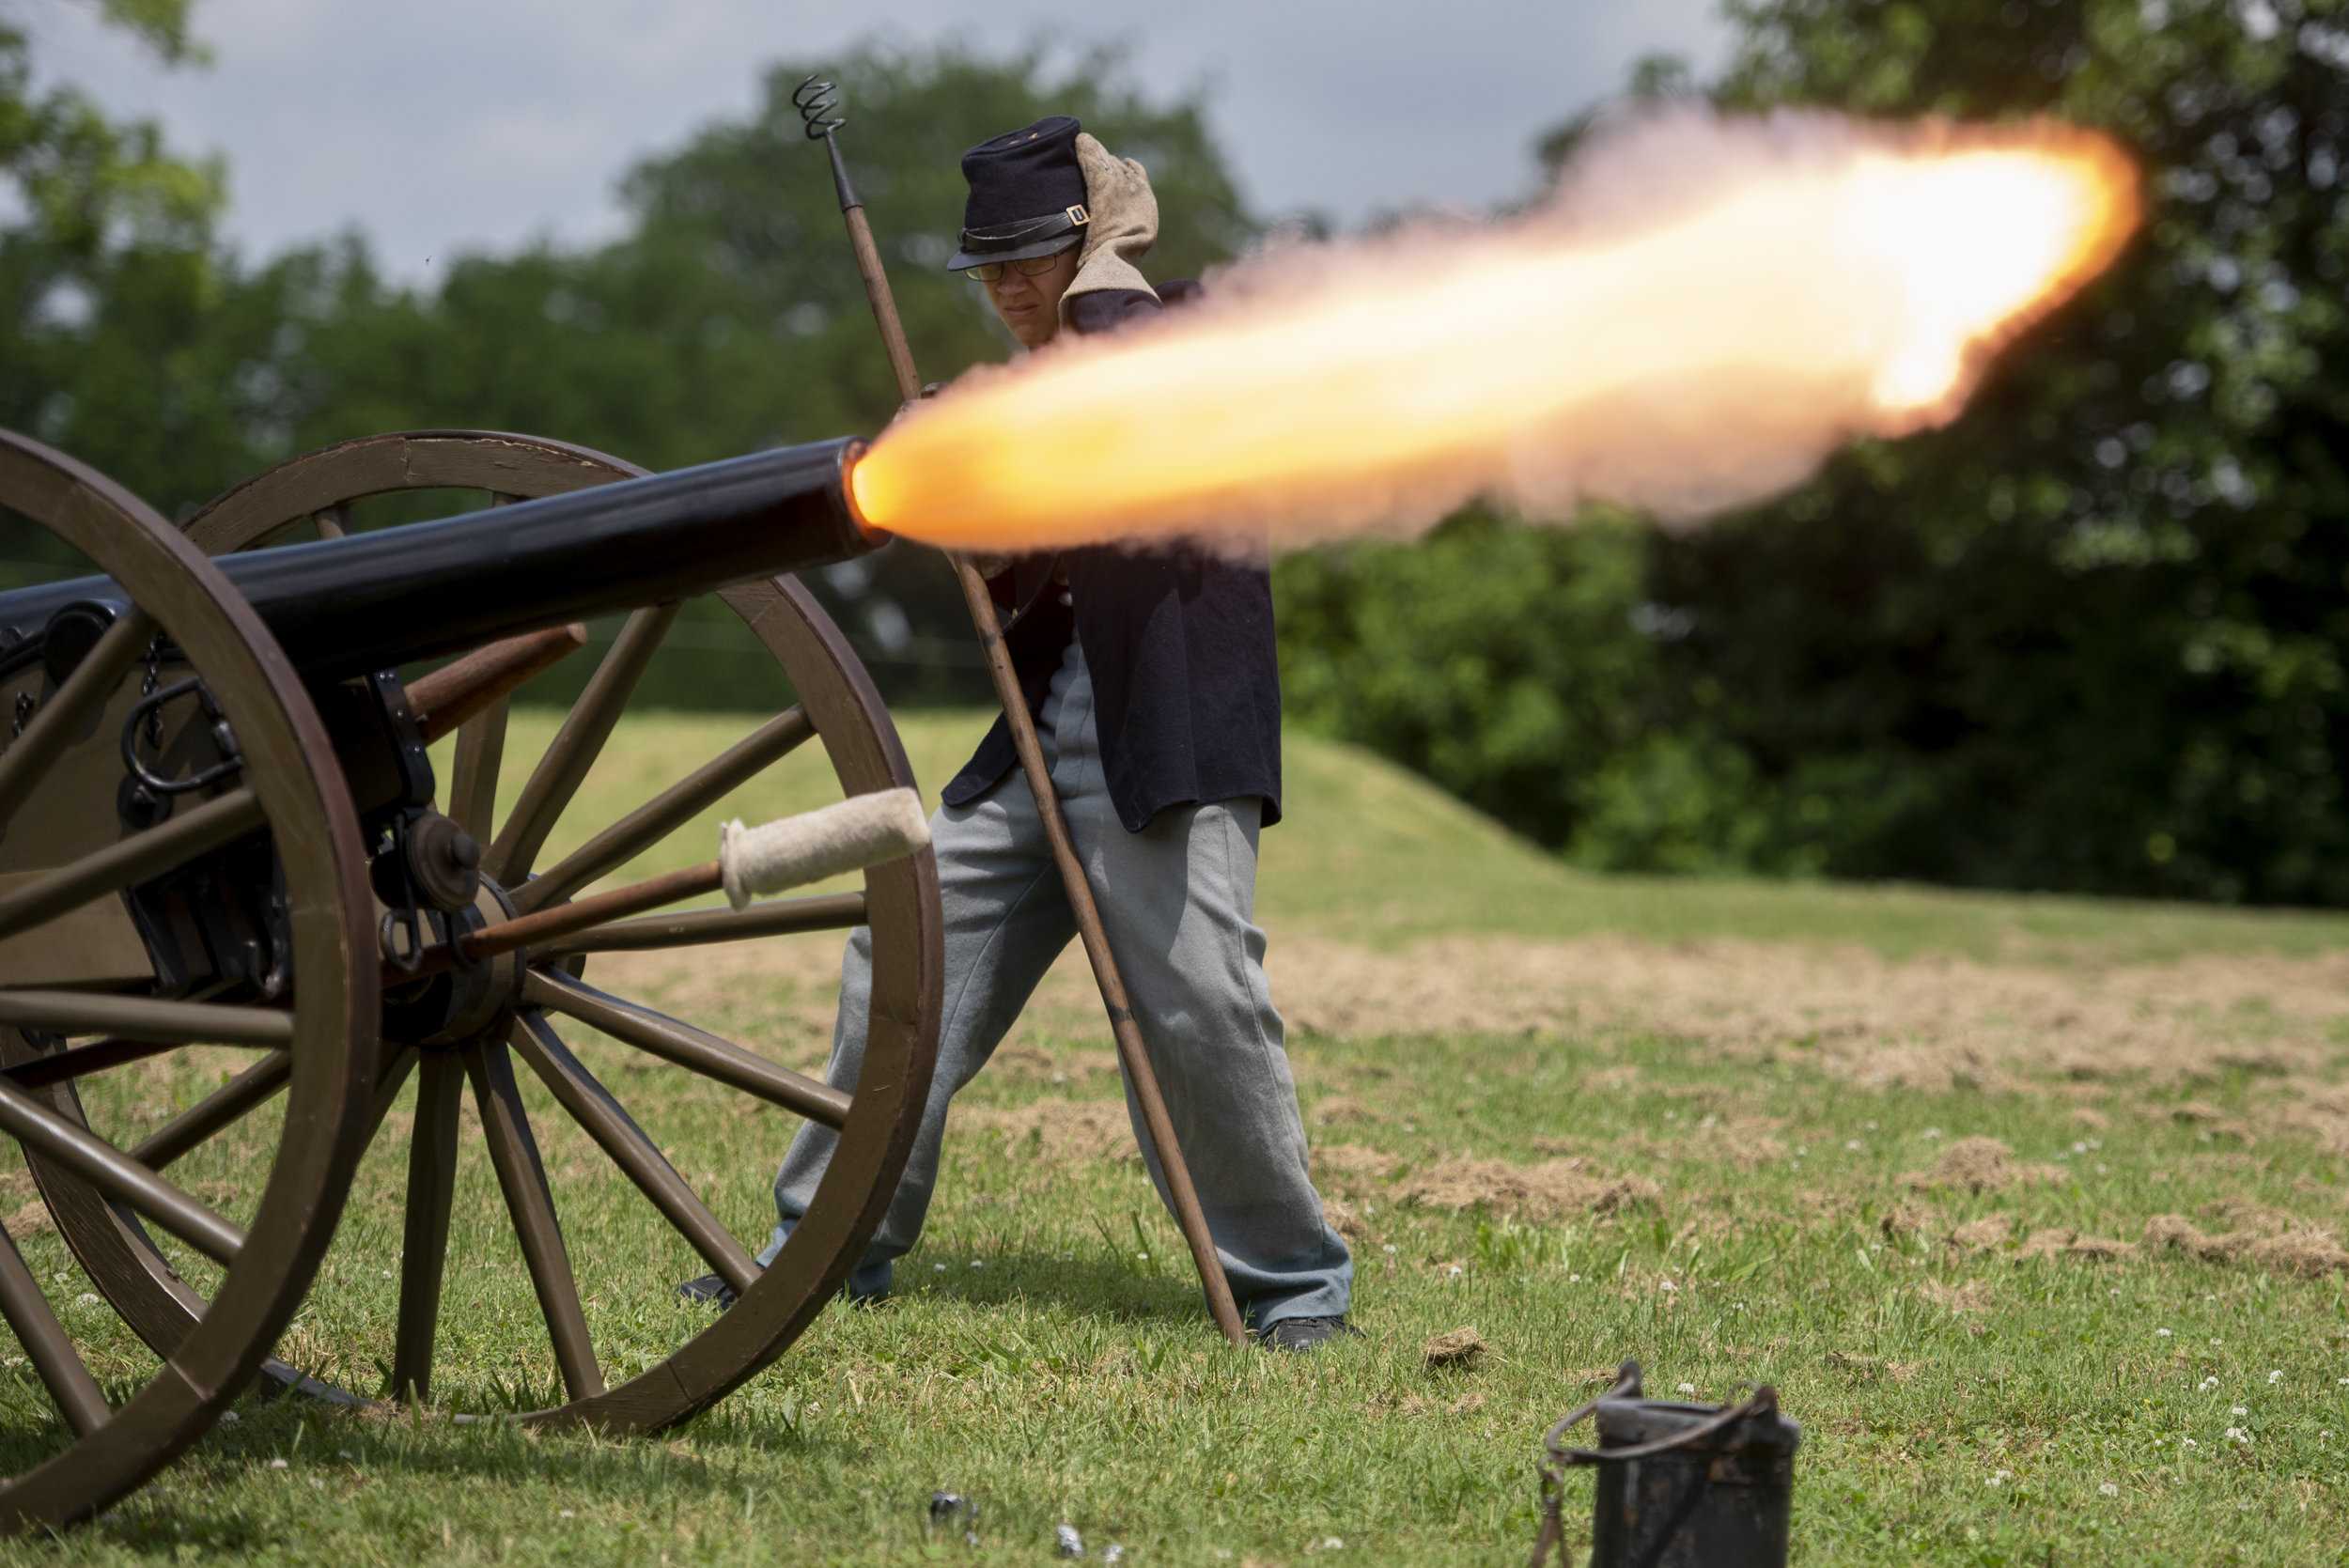 "Dressed as a Civil War soldier, Andrew Porter of Marble Hill, Missouri, 13, places a hand over the side of his head as a cannon fires during a Memorial Day at Fort D Historic Site event Monday, May 27, 2019, in Cape Girardeau. Scott House of Cape Girardeau said he and other local reenactors at the Fort D event enjoy ""keeping this place alive and bringing history to life here."" Jacob Wiegand 